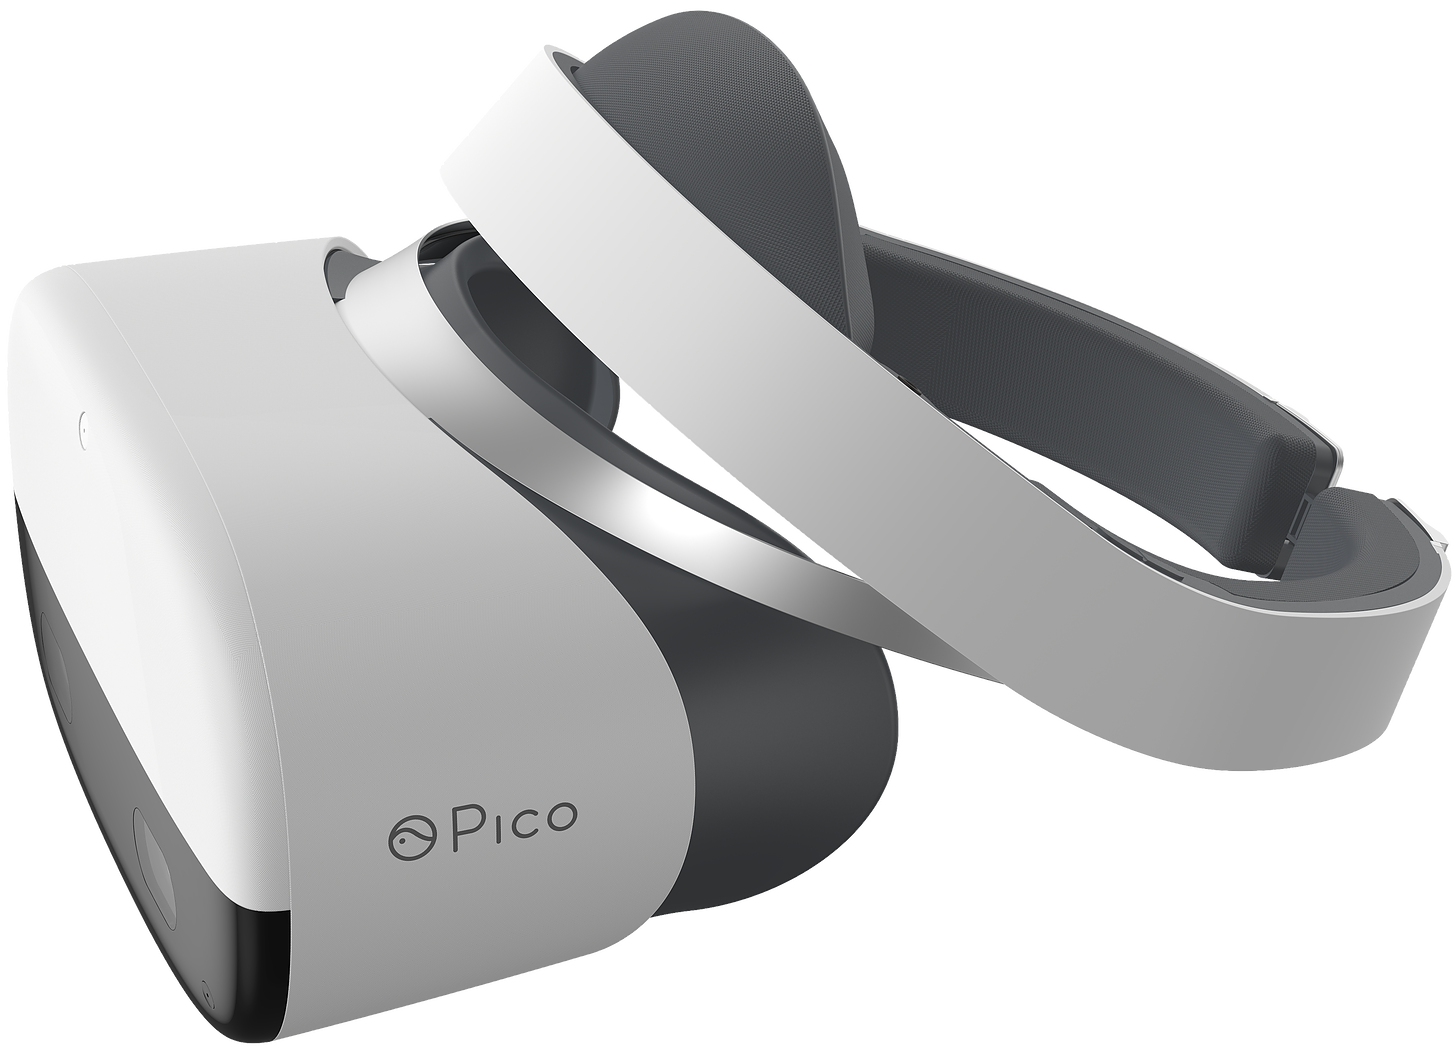 Pico Interactive Vr For All Instant Easy And Ultra Portable Vr Headset Headset Vr Glasses